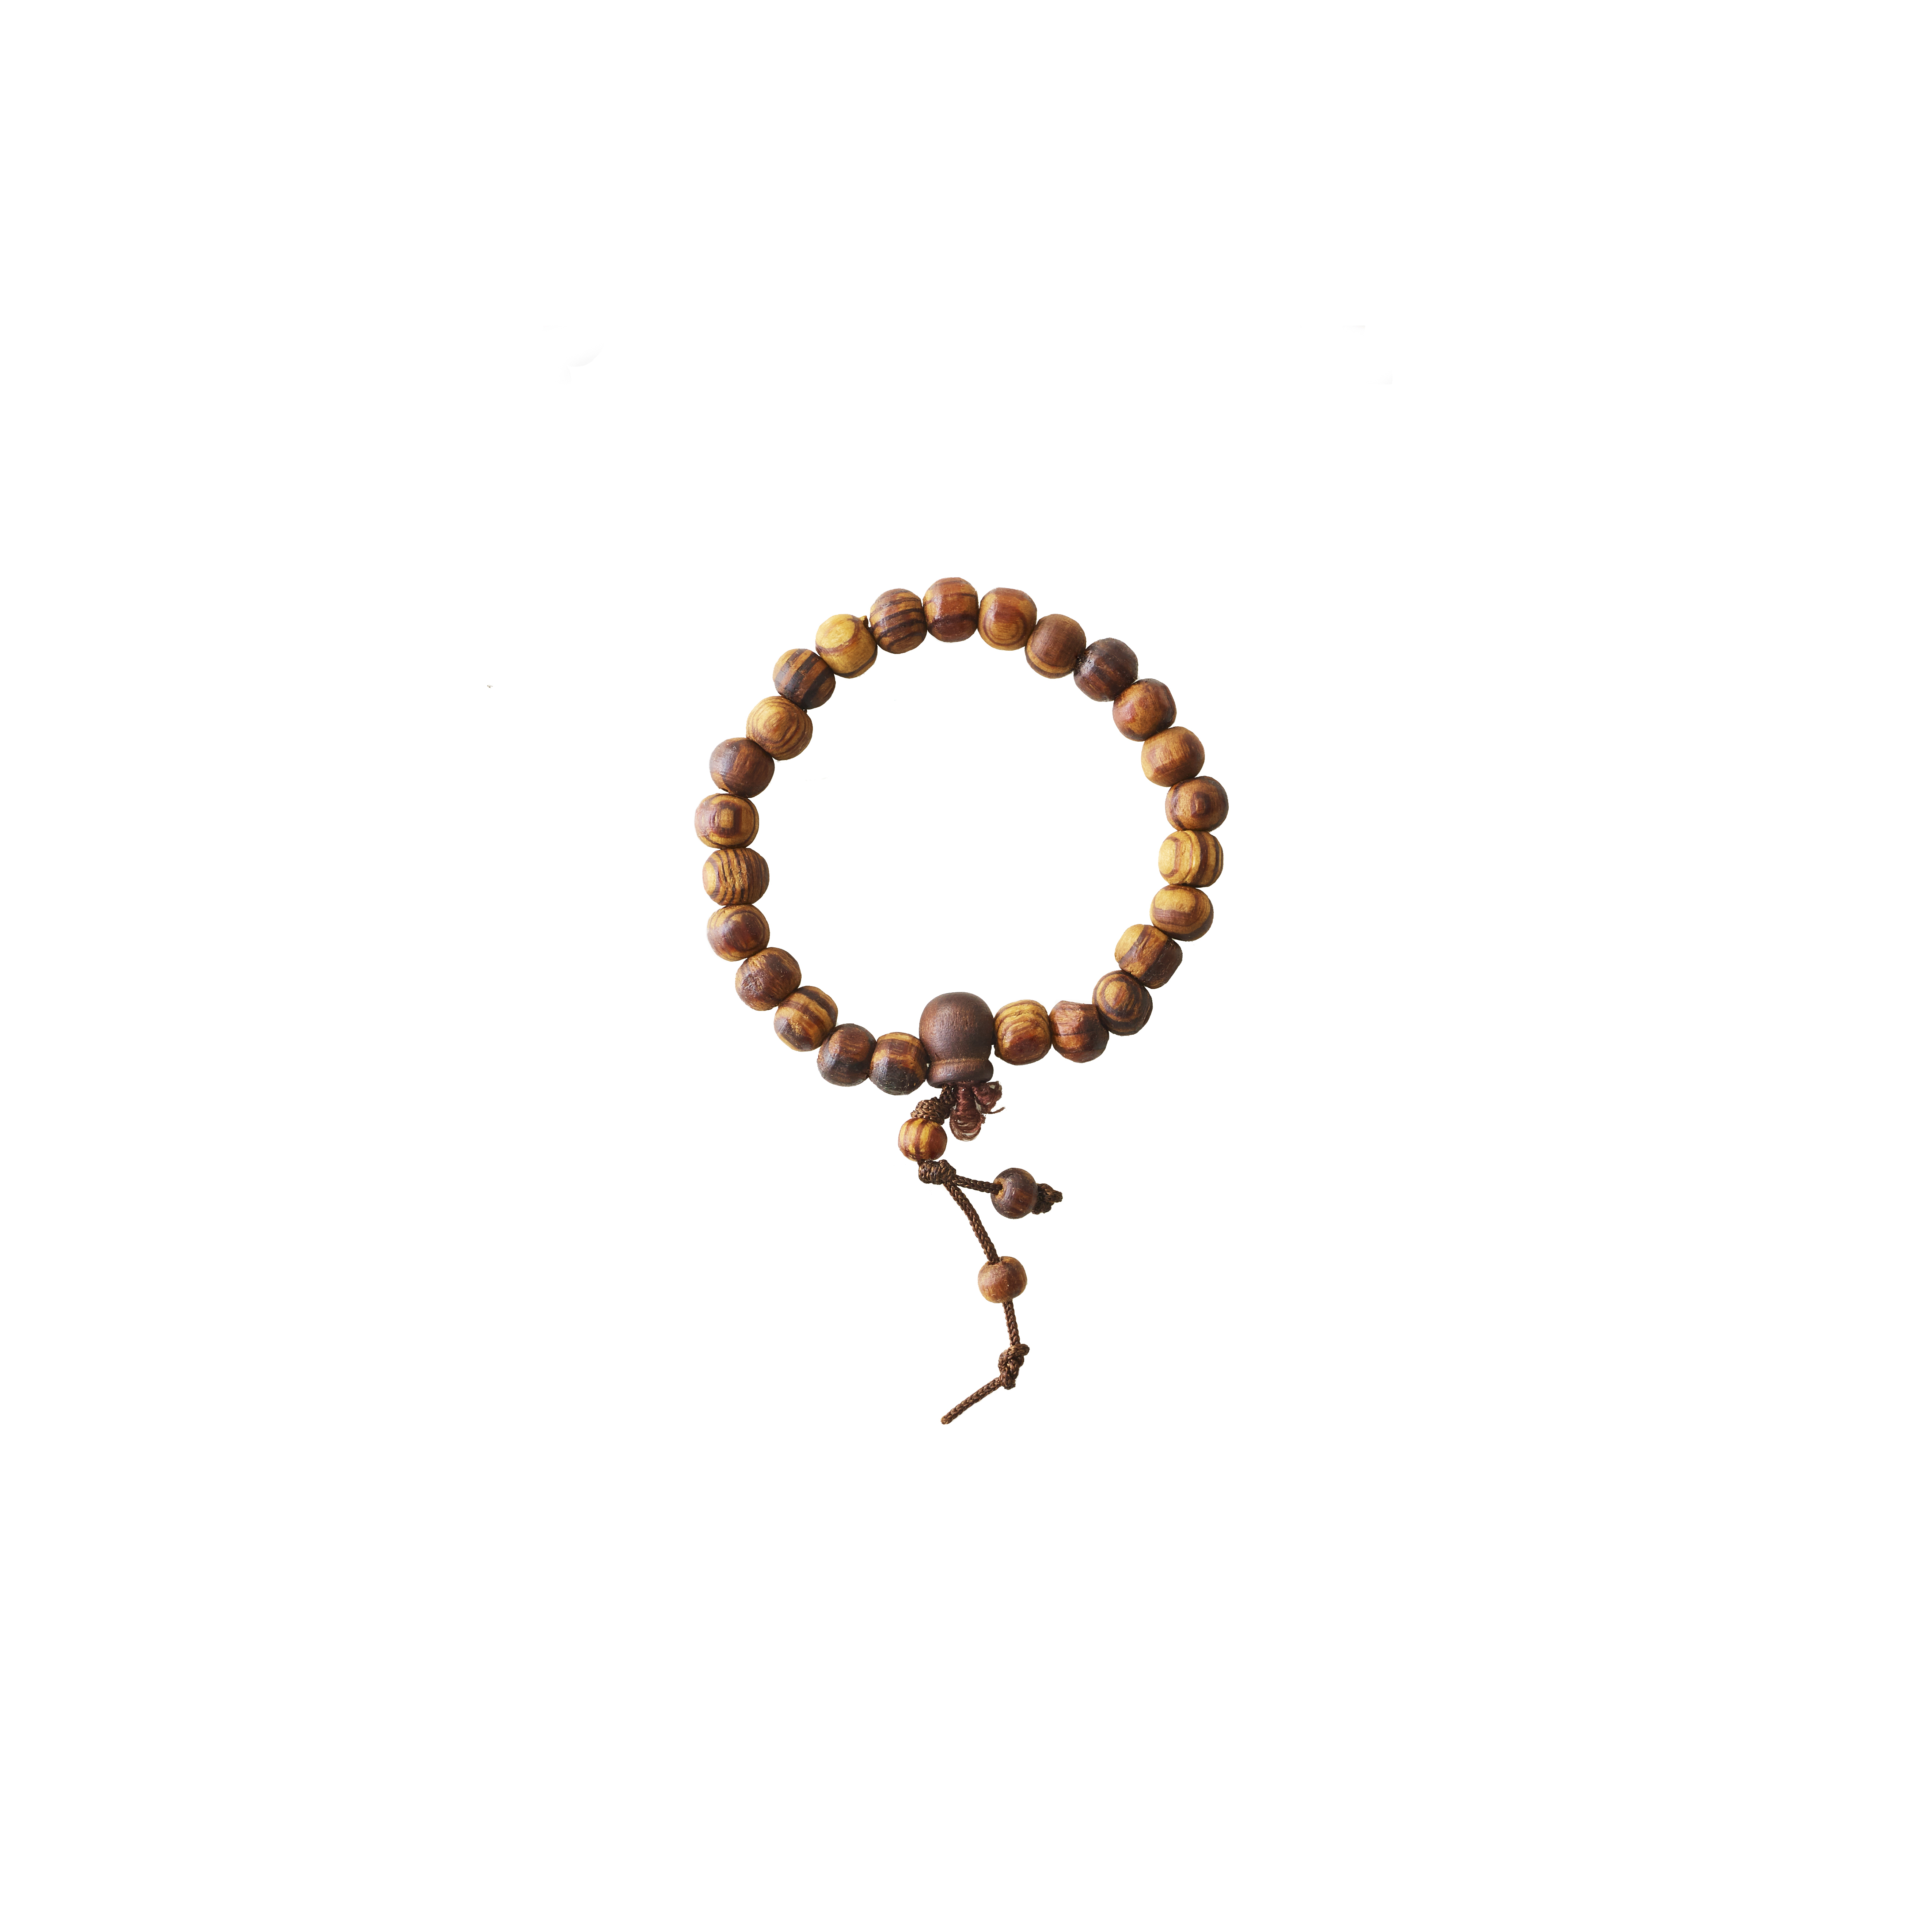 2018-0408_wood-bracelet-034_NO-COIN